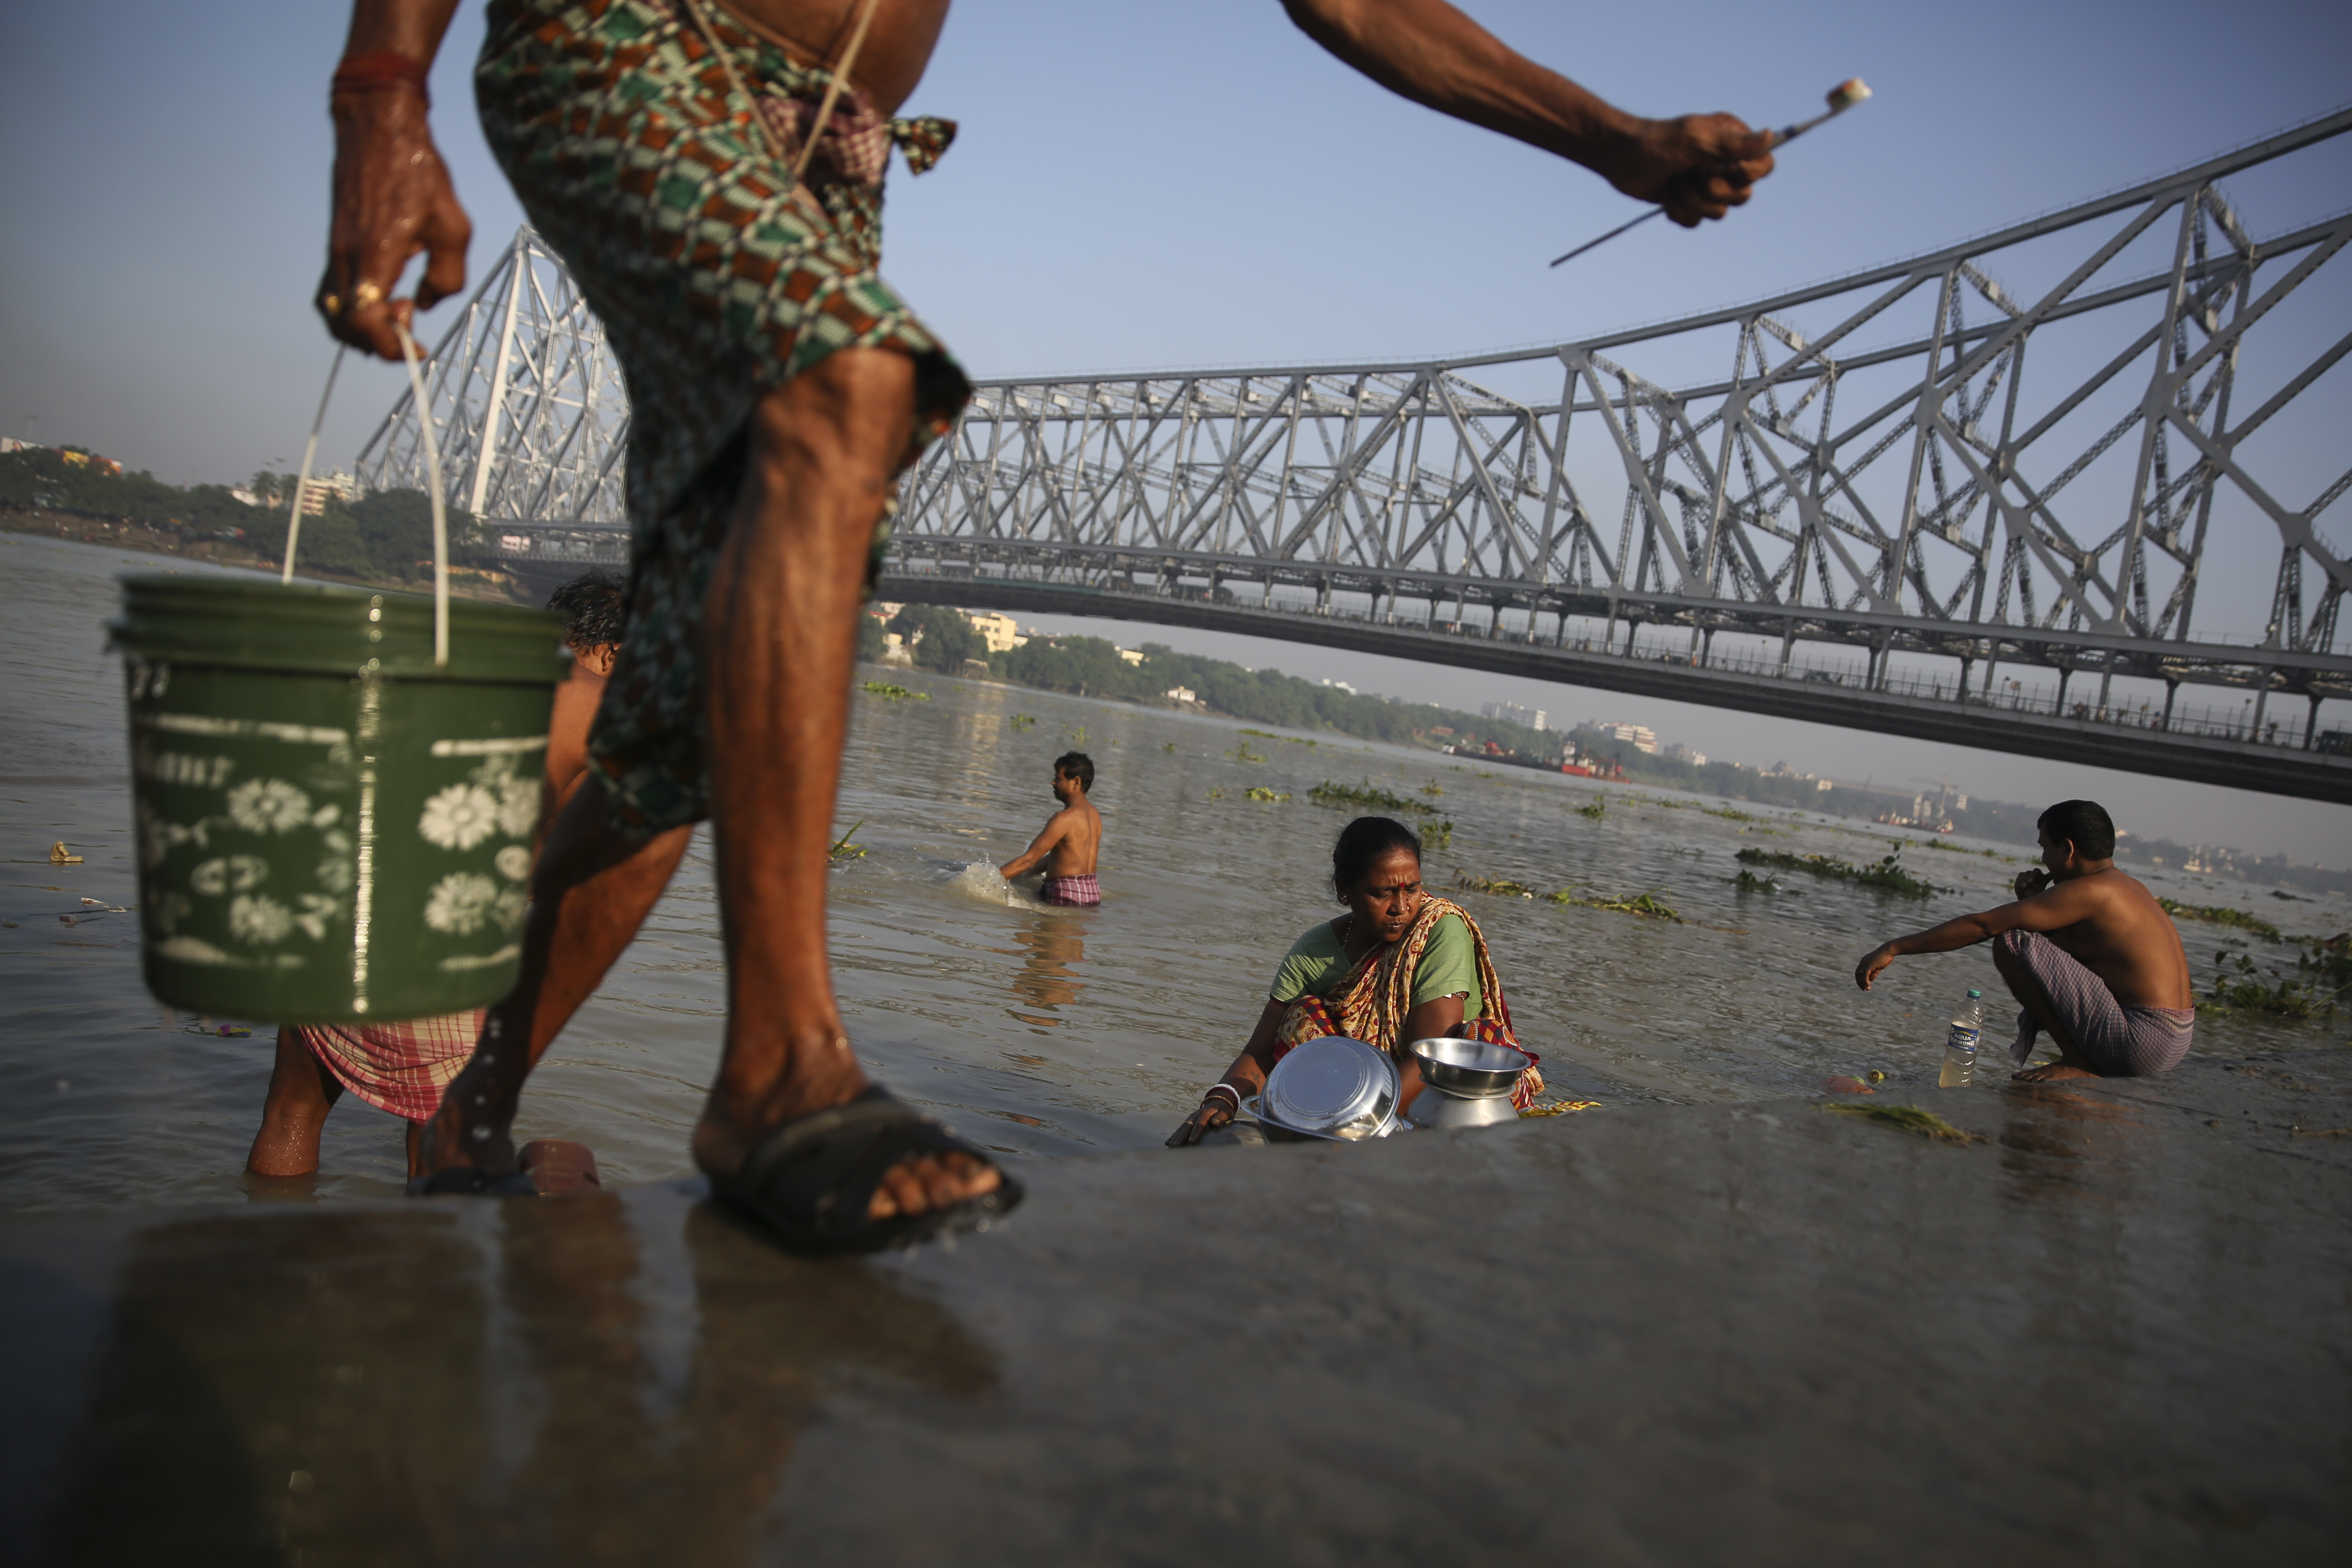 A man carries a bucket of water while people wash utensils, brush their teeth and bathe in the polluted waters of the river Hooghly, a distributary of the river Ganges and known as Ganga by locals, in the backdrop of the landmark Howrah Bridge in Kolkata, in the eastern Indian state of West Bengal, Friday, October 11, 2019. Once the capital of the British raj, today the seething metropolis is home to nearly 15 million people. (AP Photo/Altaf Qadri)